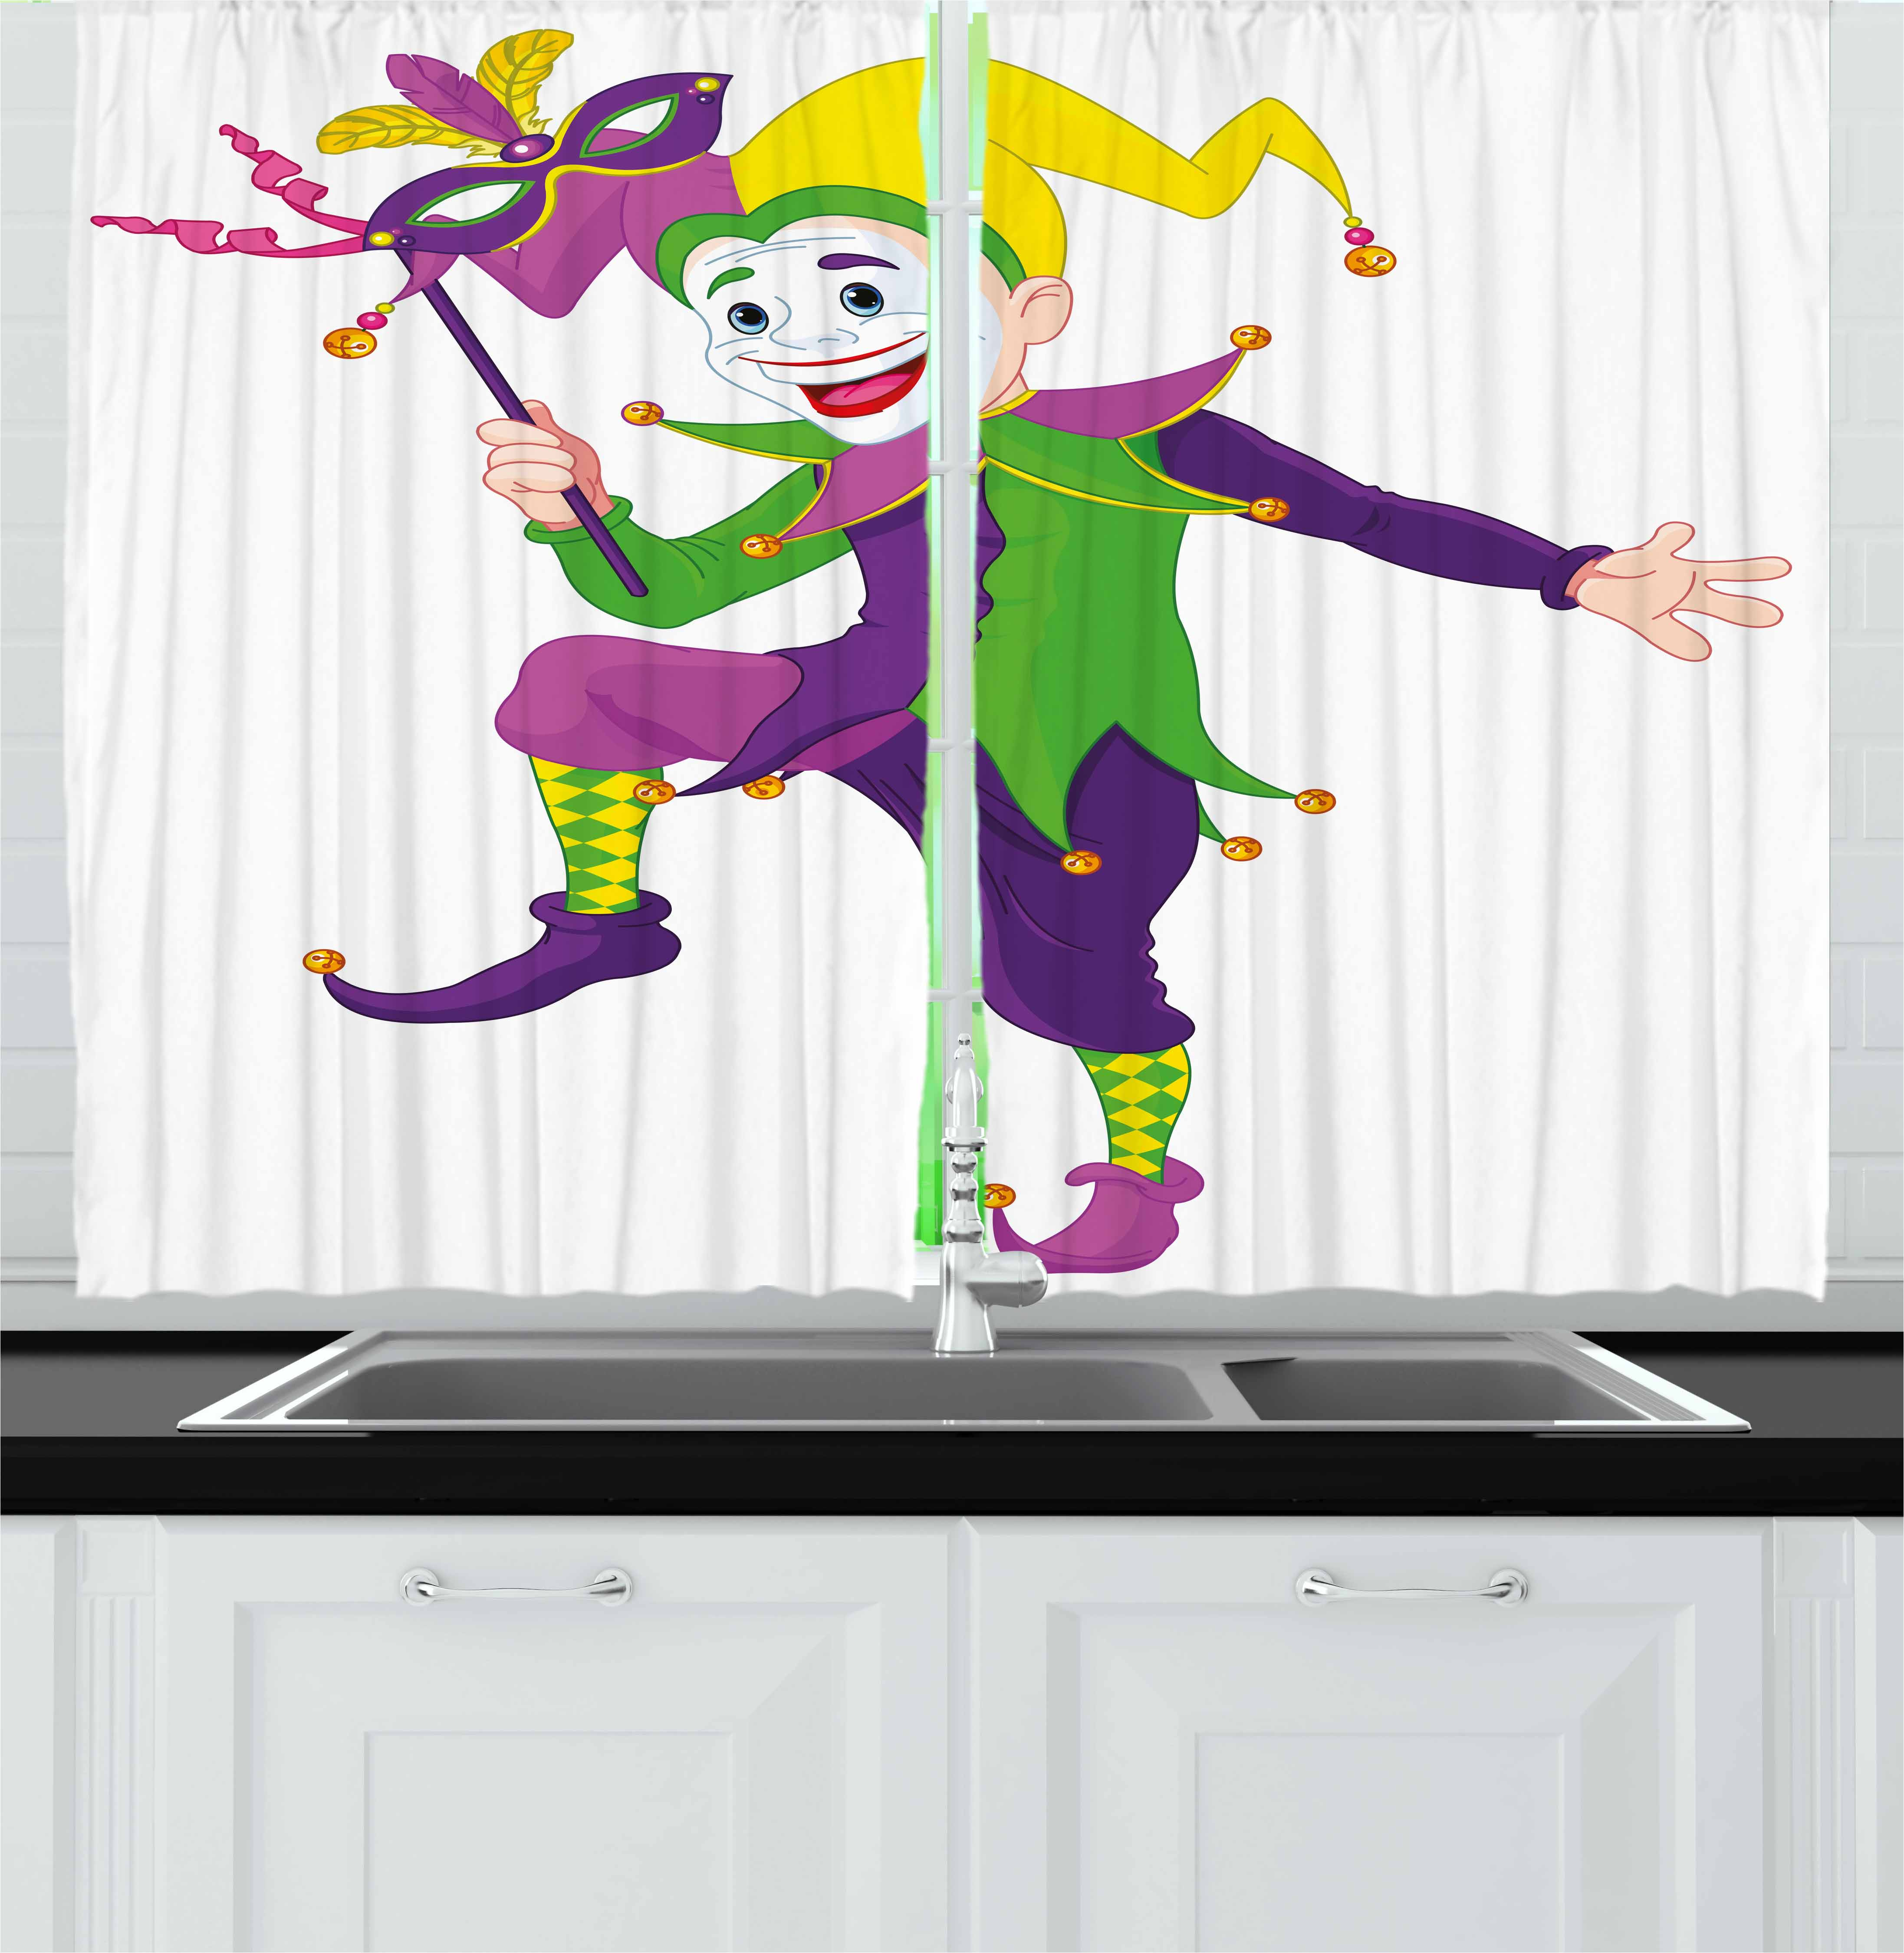 Mardi Gras Curtains 2 Panels Set, Cartoon Style Jester in Iconic Costume with Mask Happy Dancing Party Figure, Window Drapes for Living Room Bedroom, 55W X 39L Inches, Multicolor, by Ambesonne